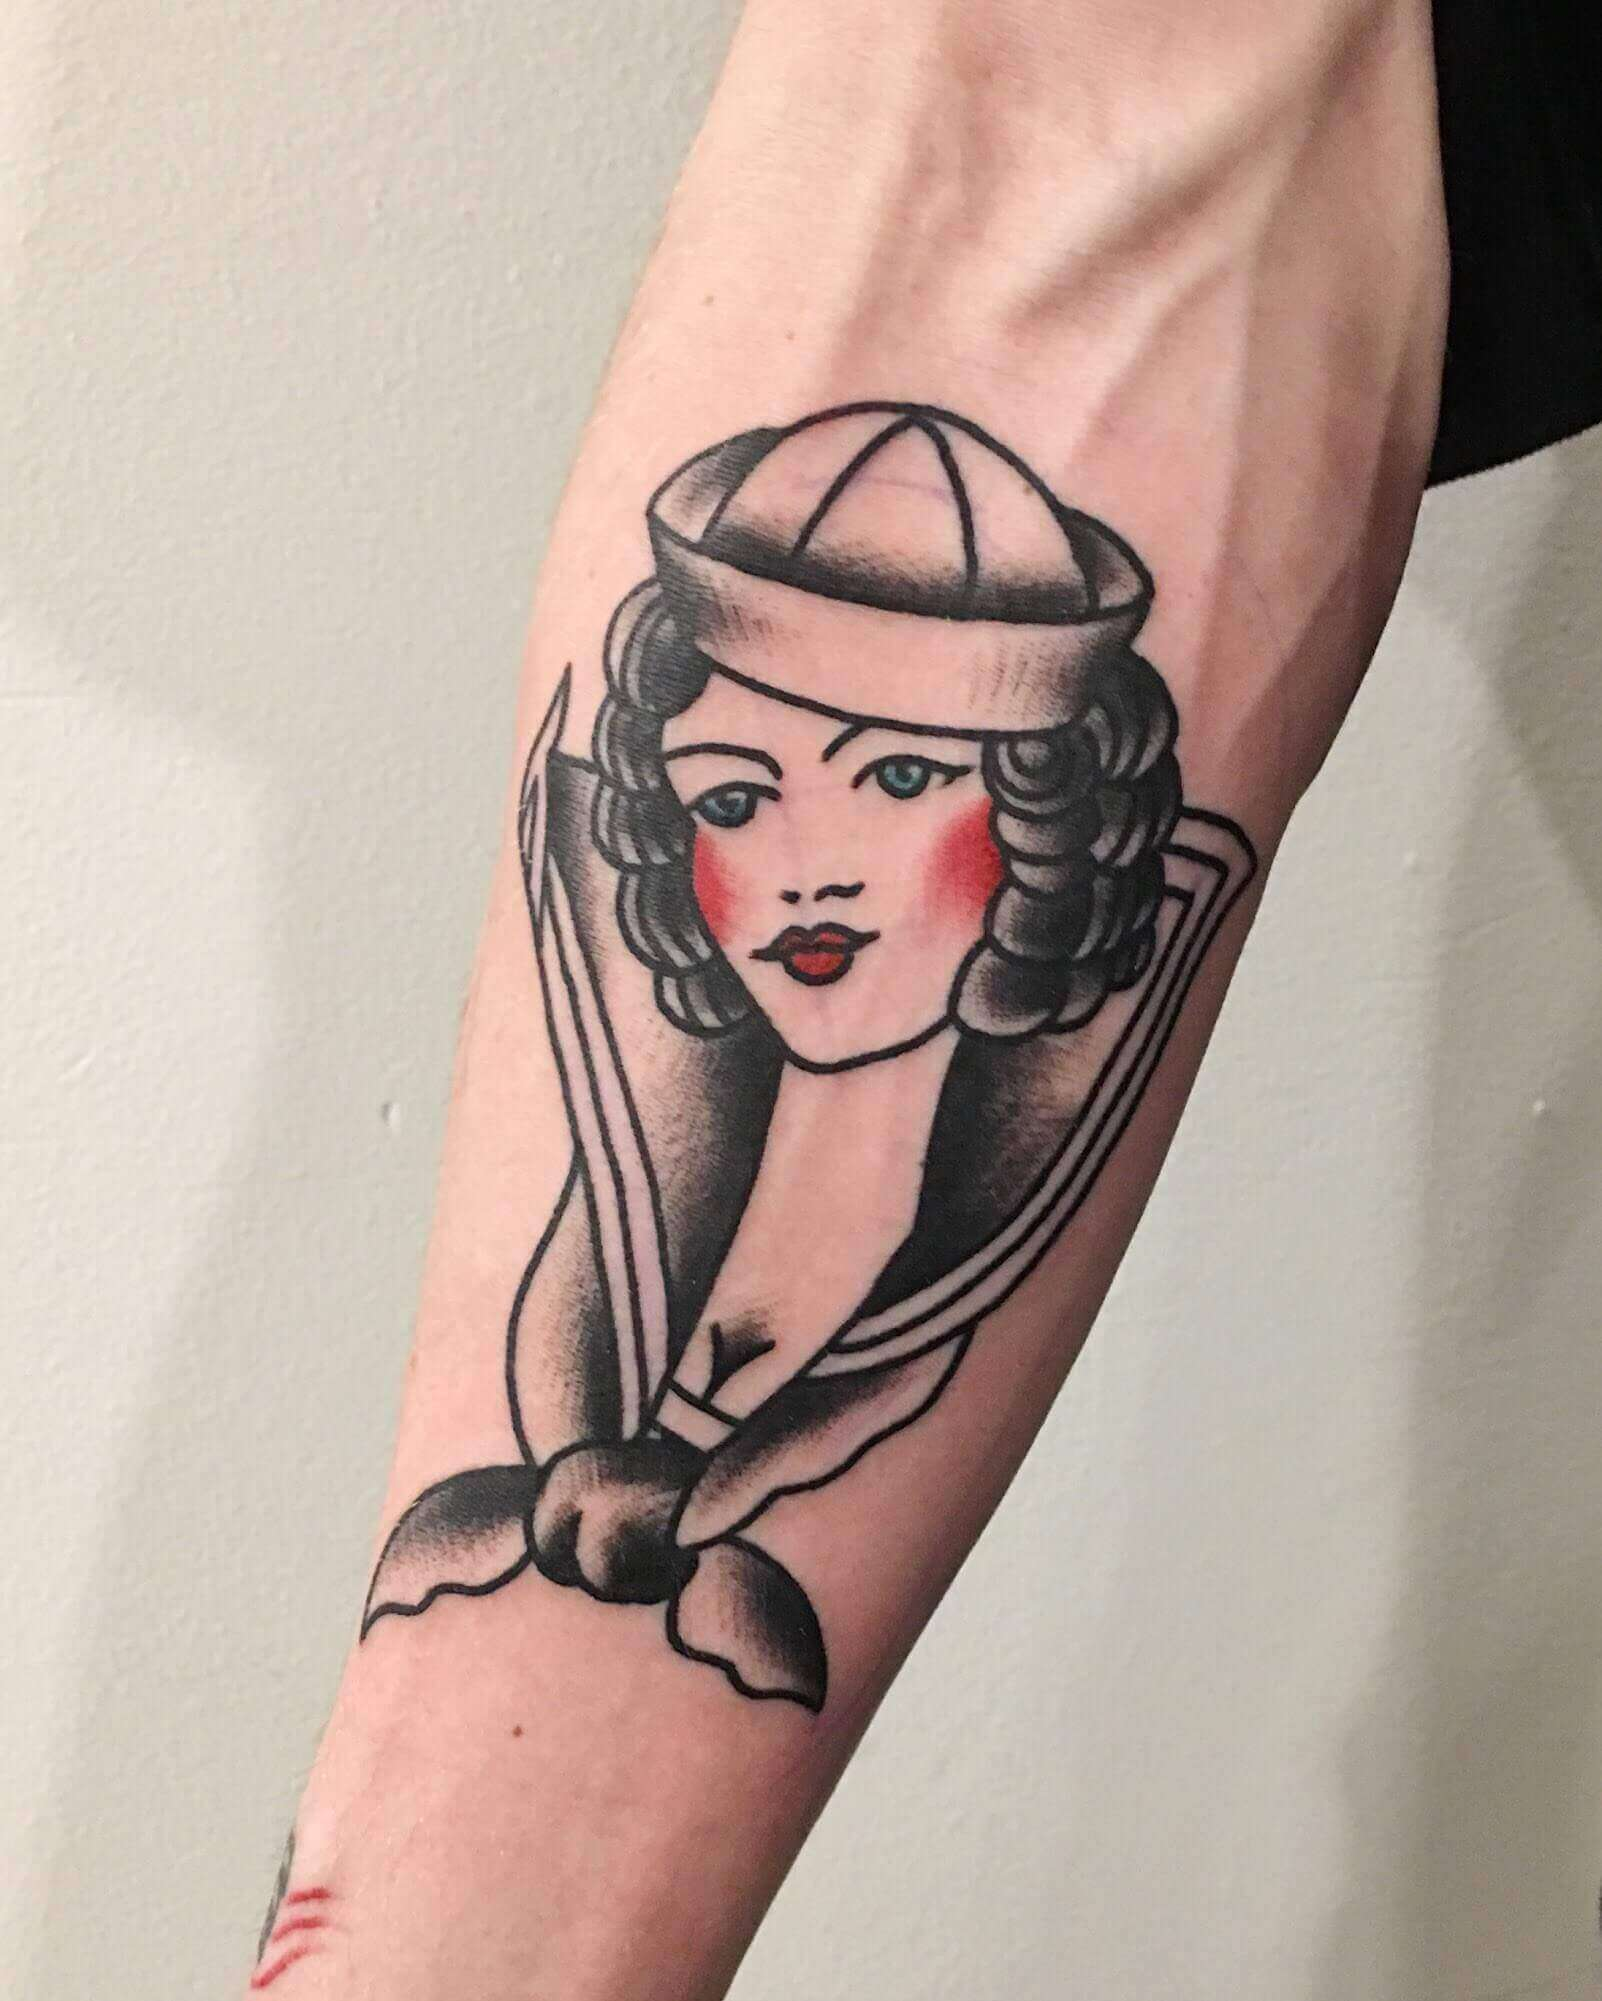 sailor jerry pinup tattoo on arm